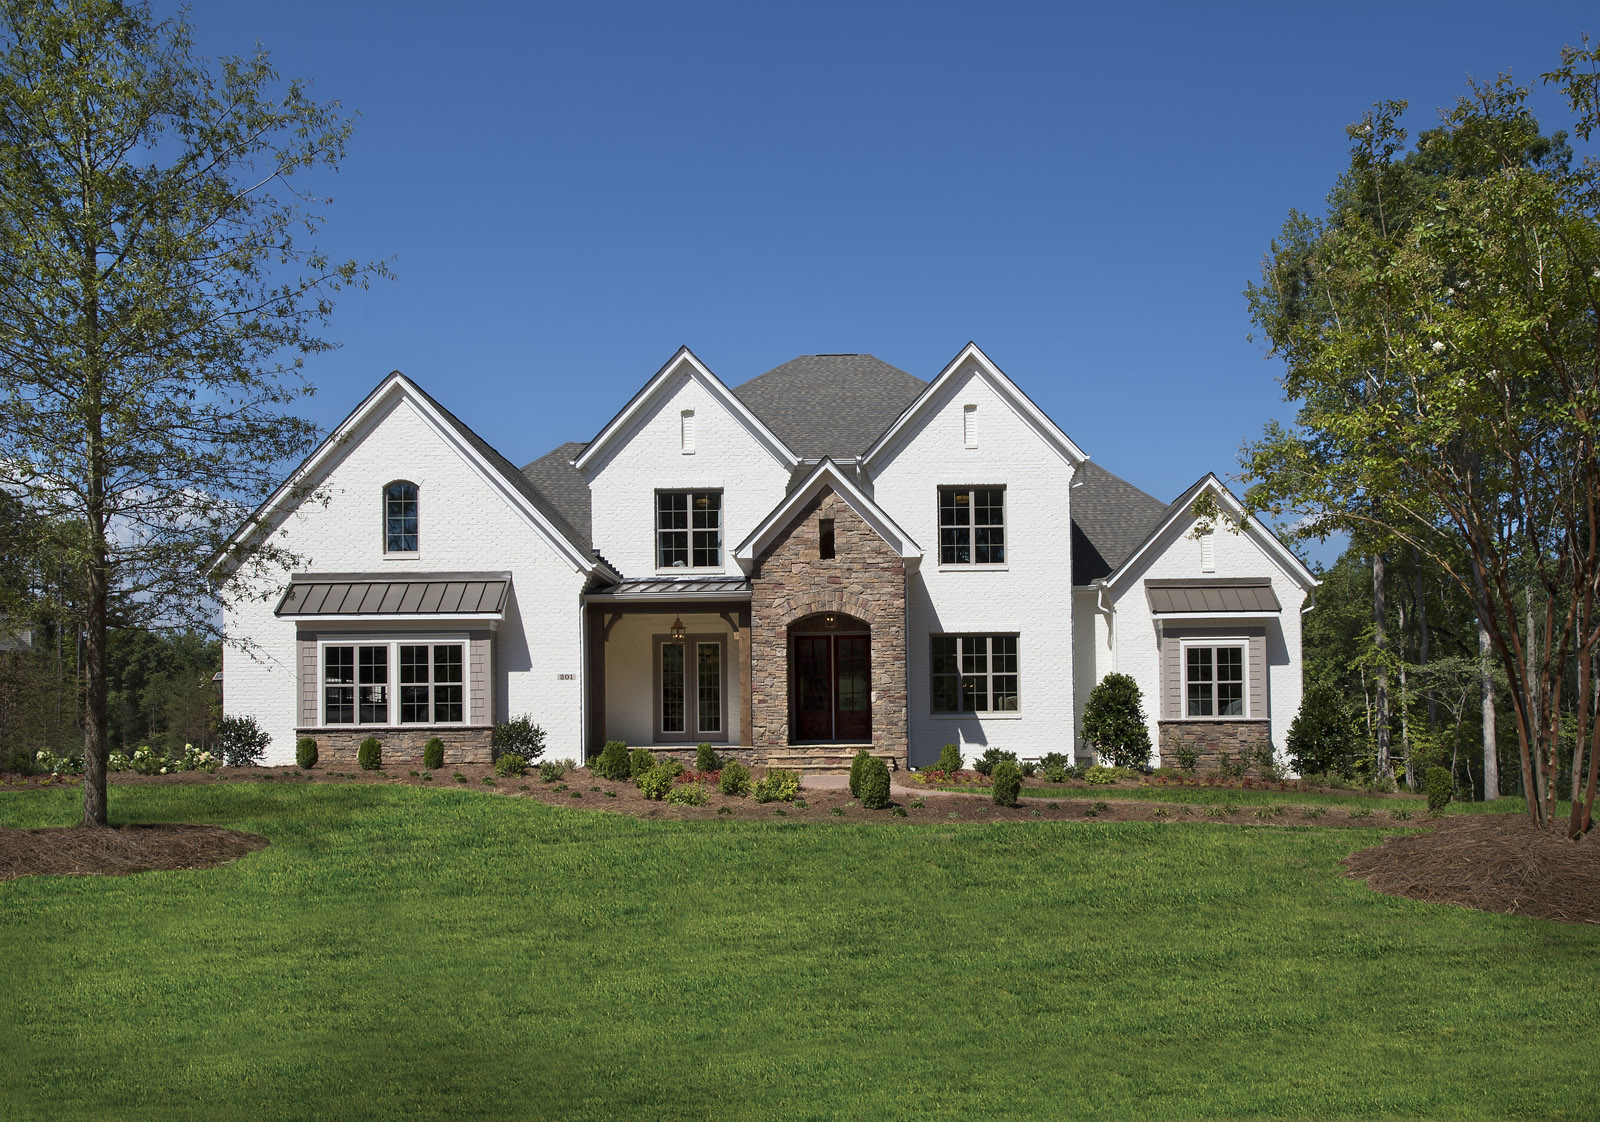 Shea homes opens new luxury model homes in weddington nc for Shea homes design studio